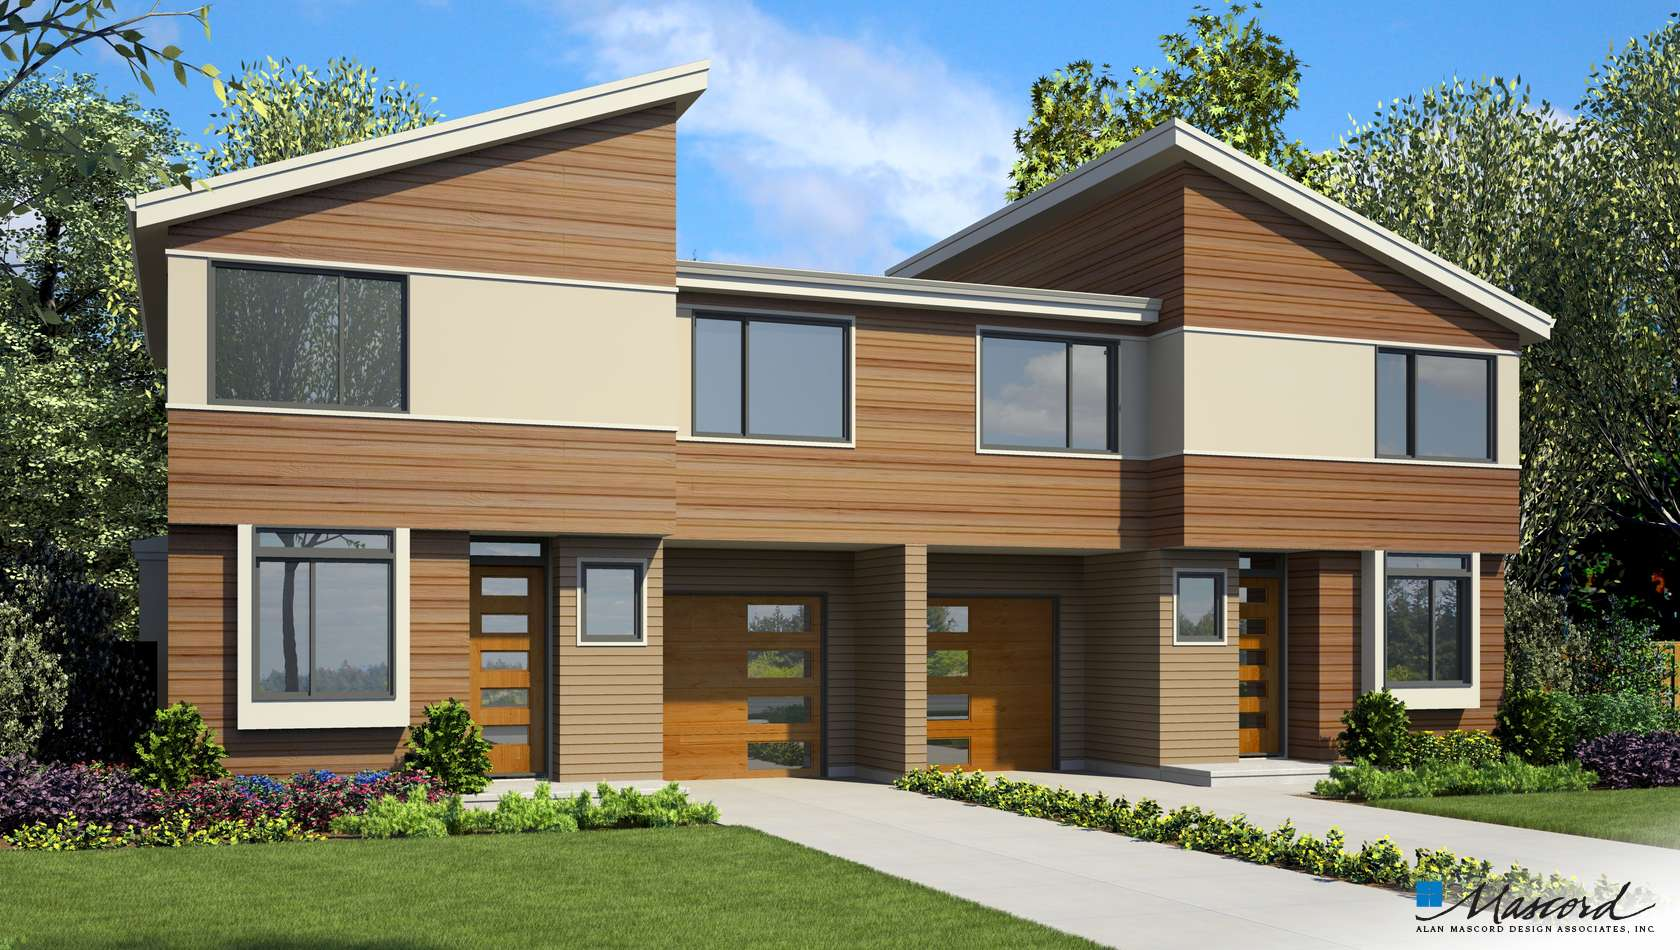 Main image for house plan 4046: The Mowry